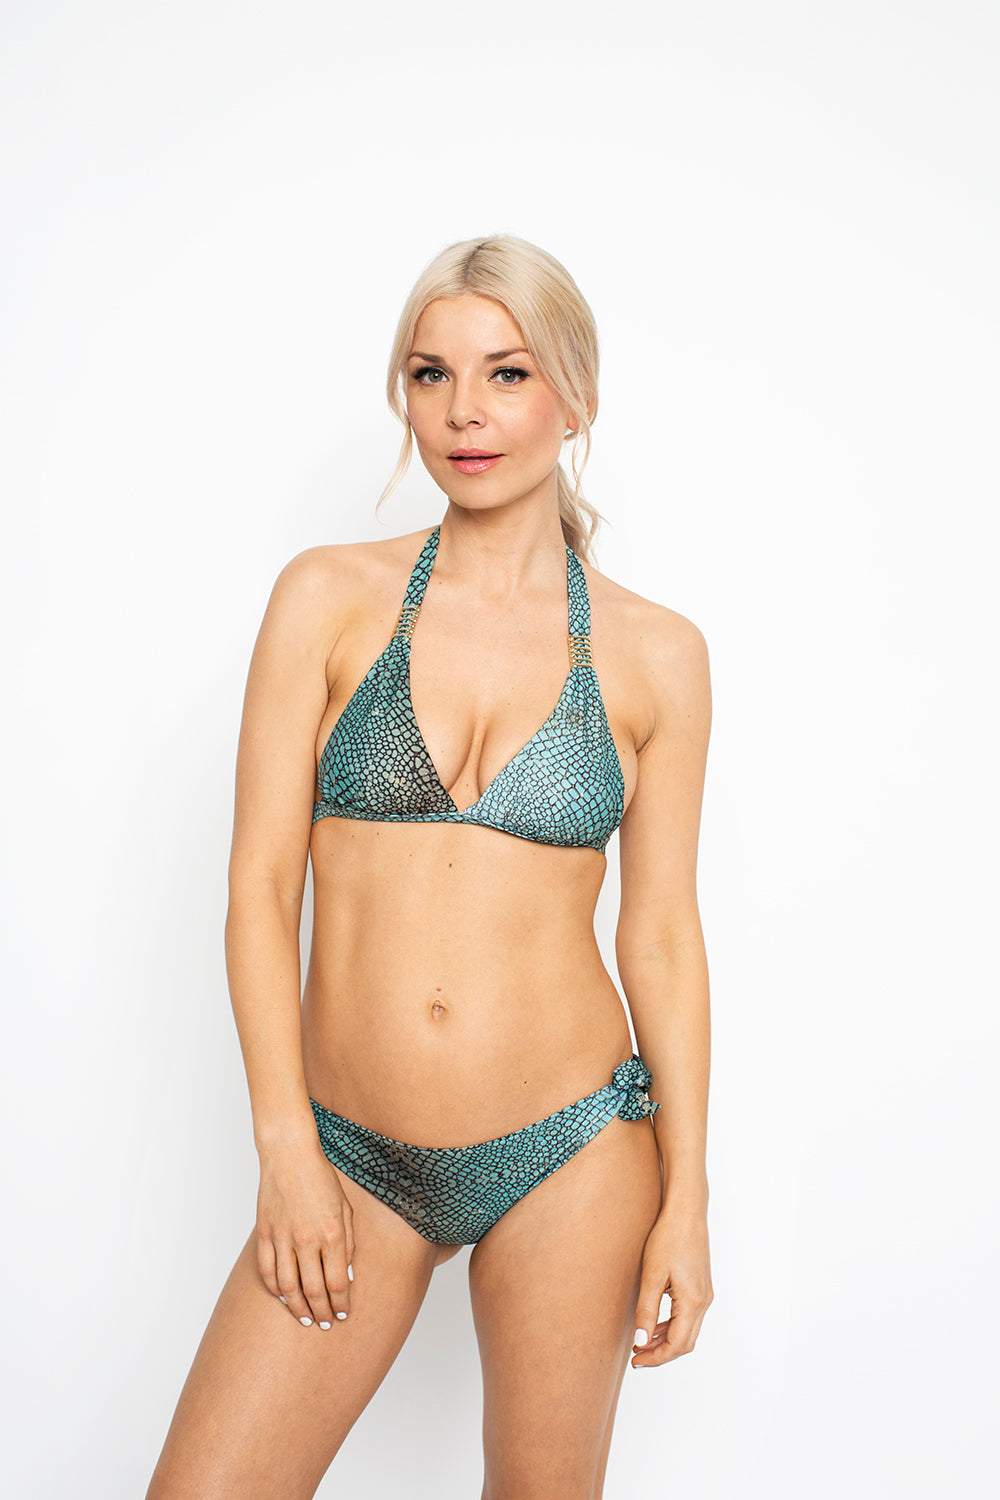 West Seventy Nine - Daydreamer Bikini Top - Mamba